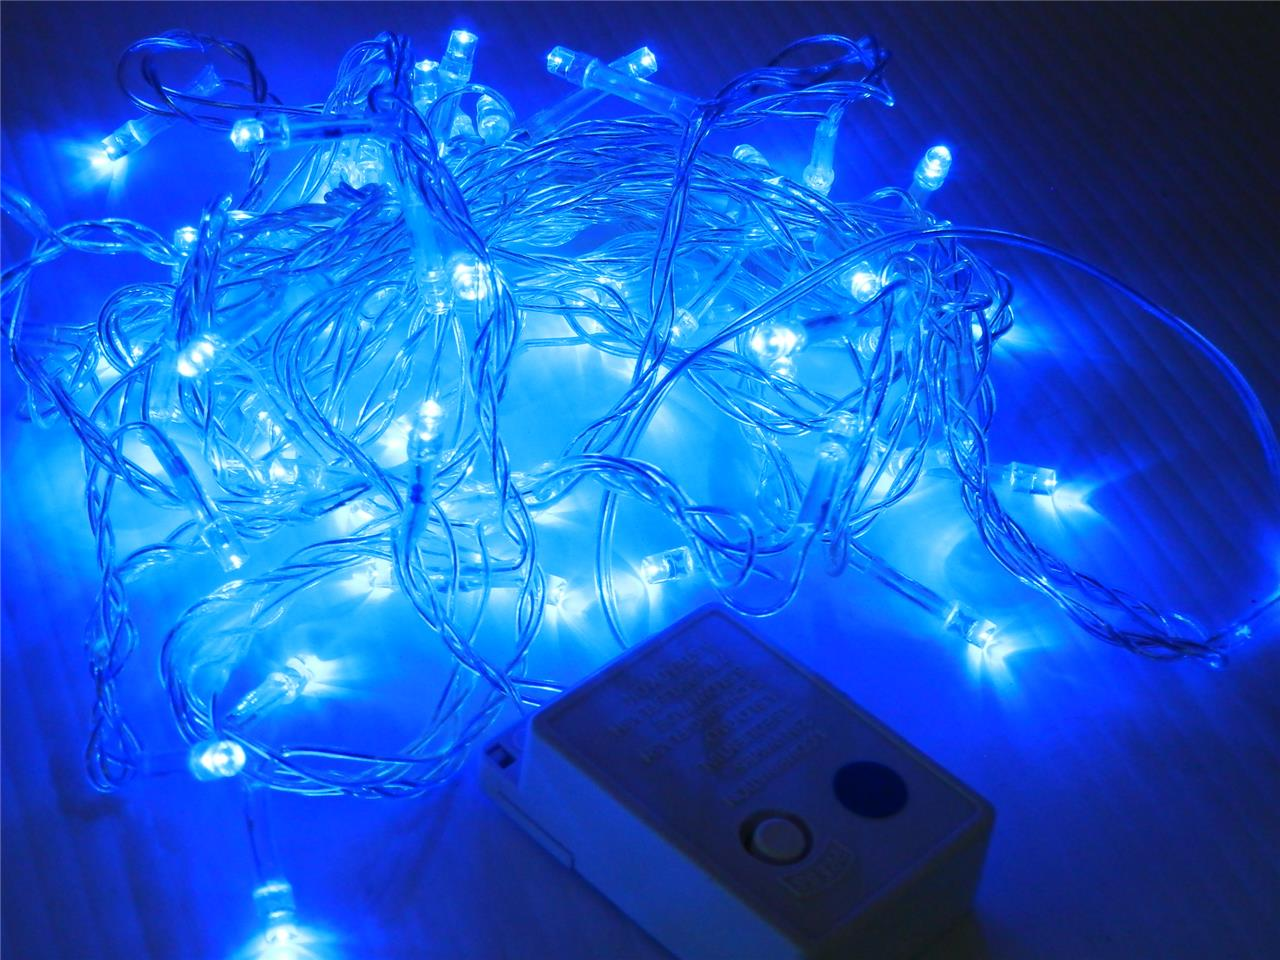 String Lights Usa : 100 LED Christmas Halloween Fairy String Party Lights 8 Function USA SELLER!